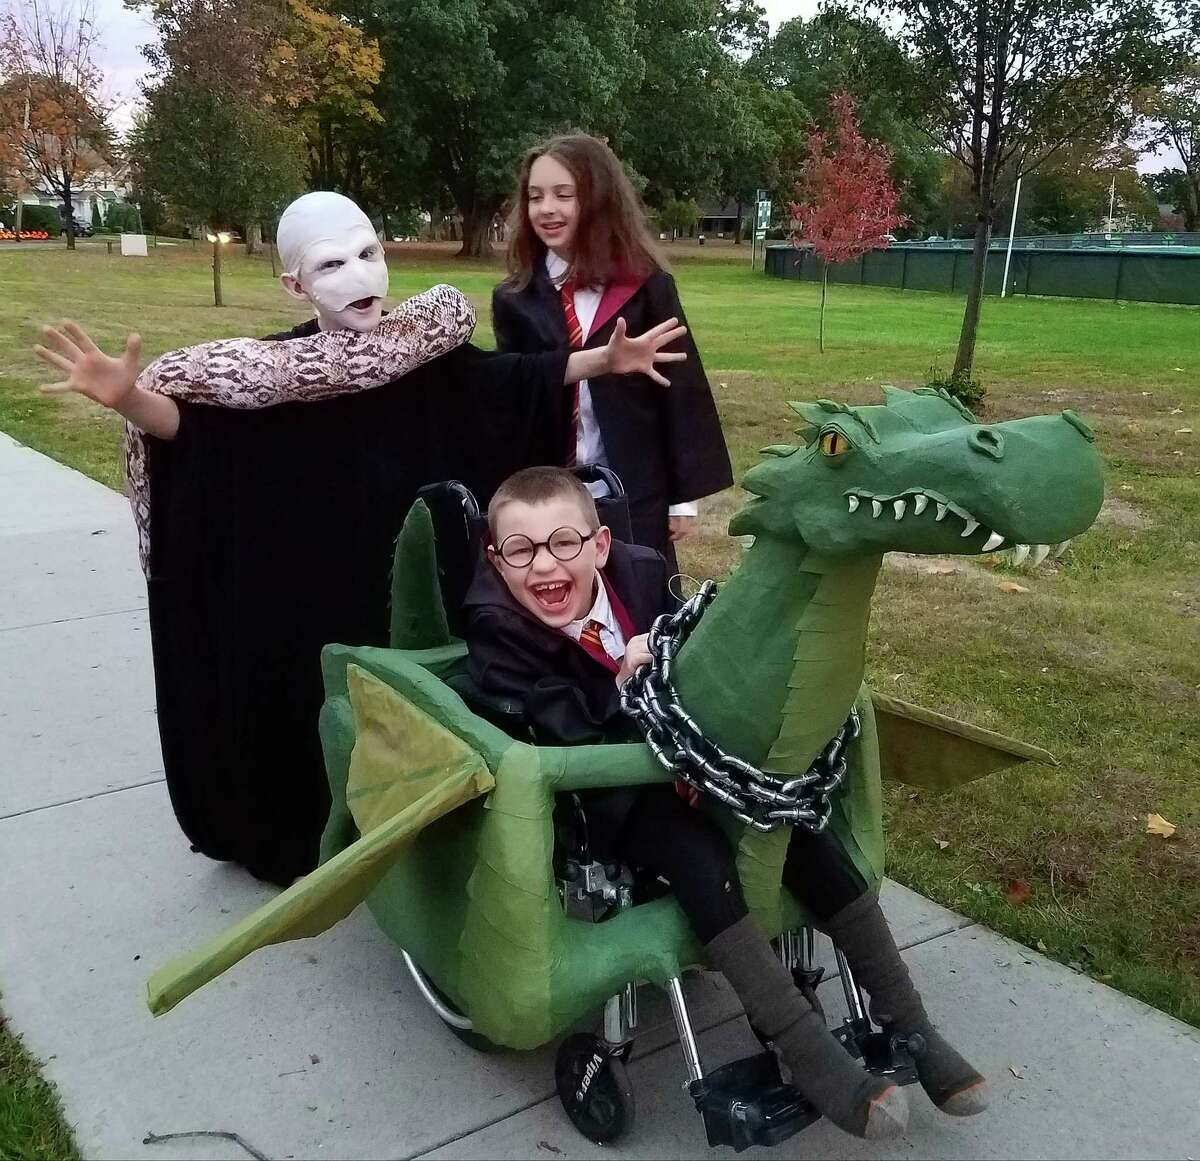 The Harry Potter-mobile made it easier for Sam Buck to get around Glenville for Halloween.